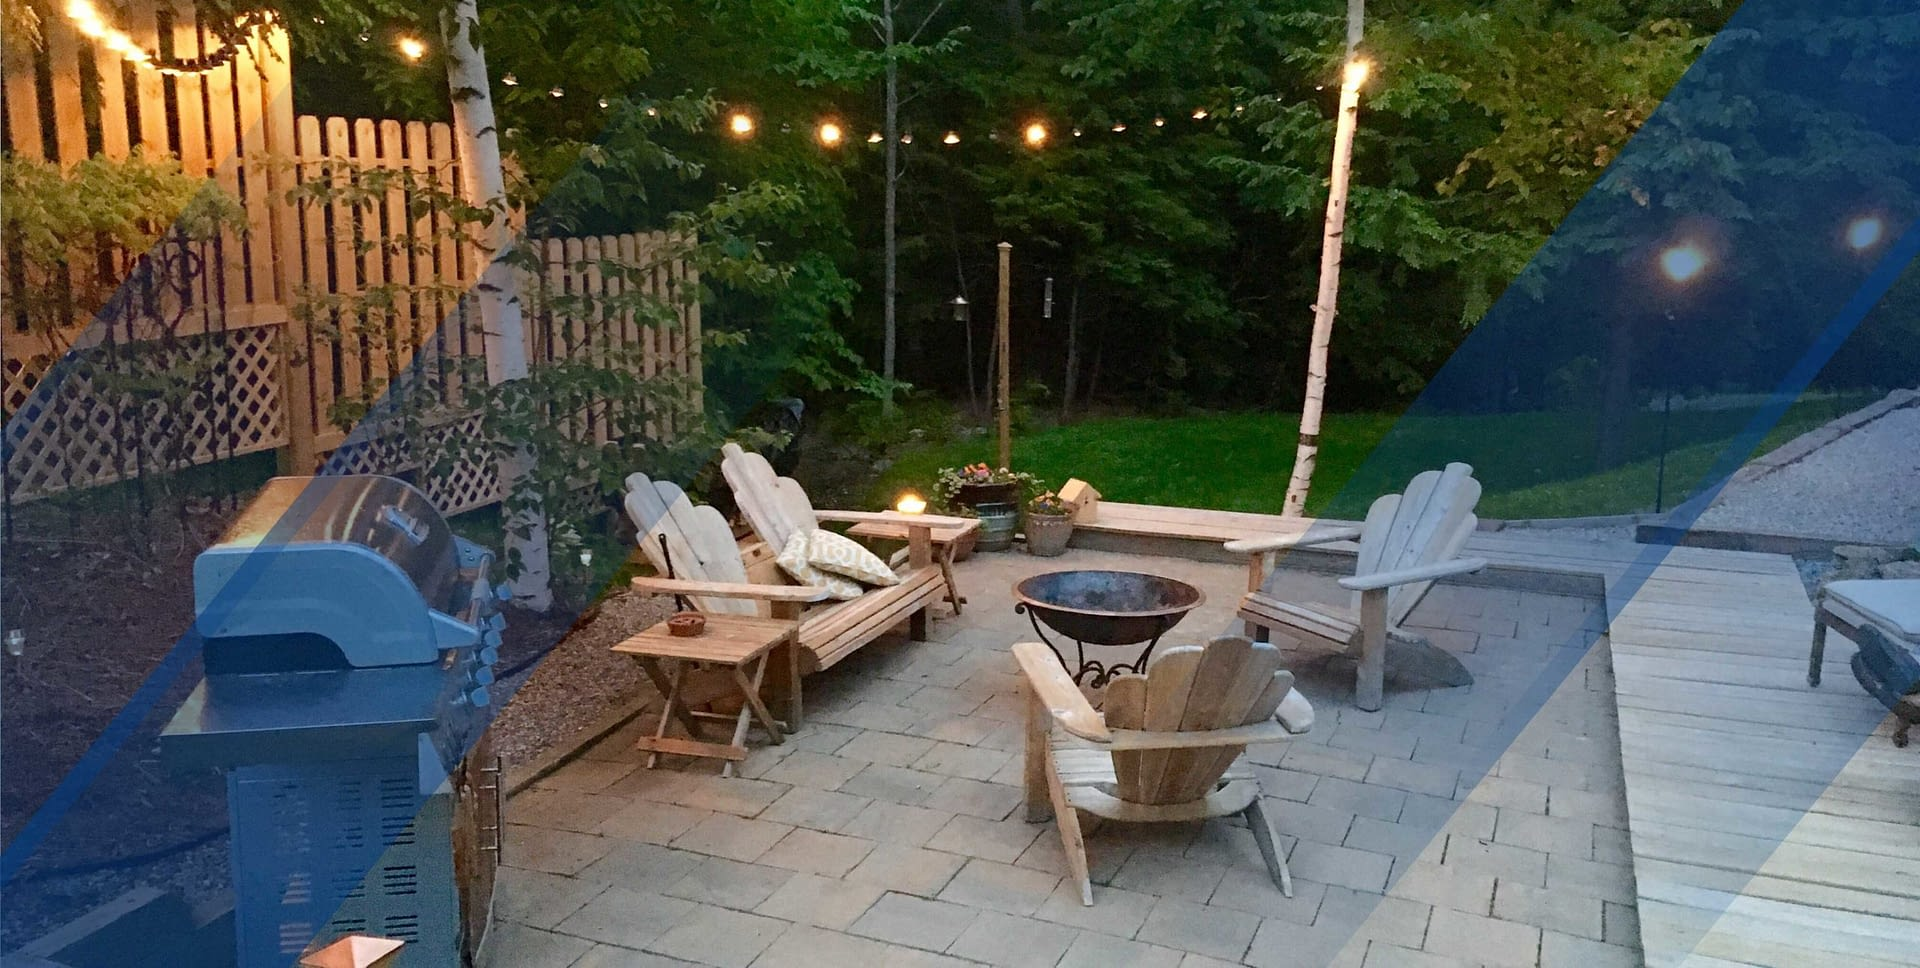 WHY BUY A HOUSE WITH A BIG BACKYARD?